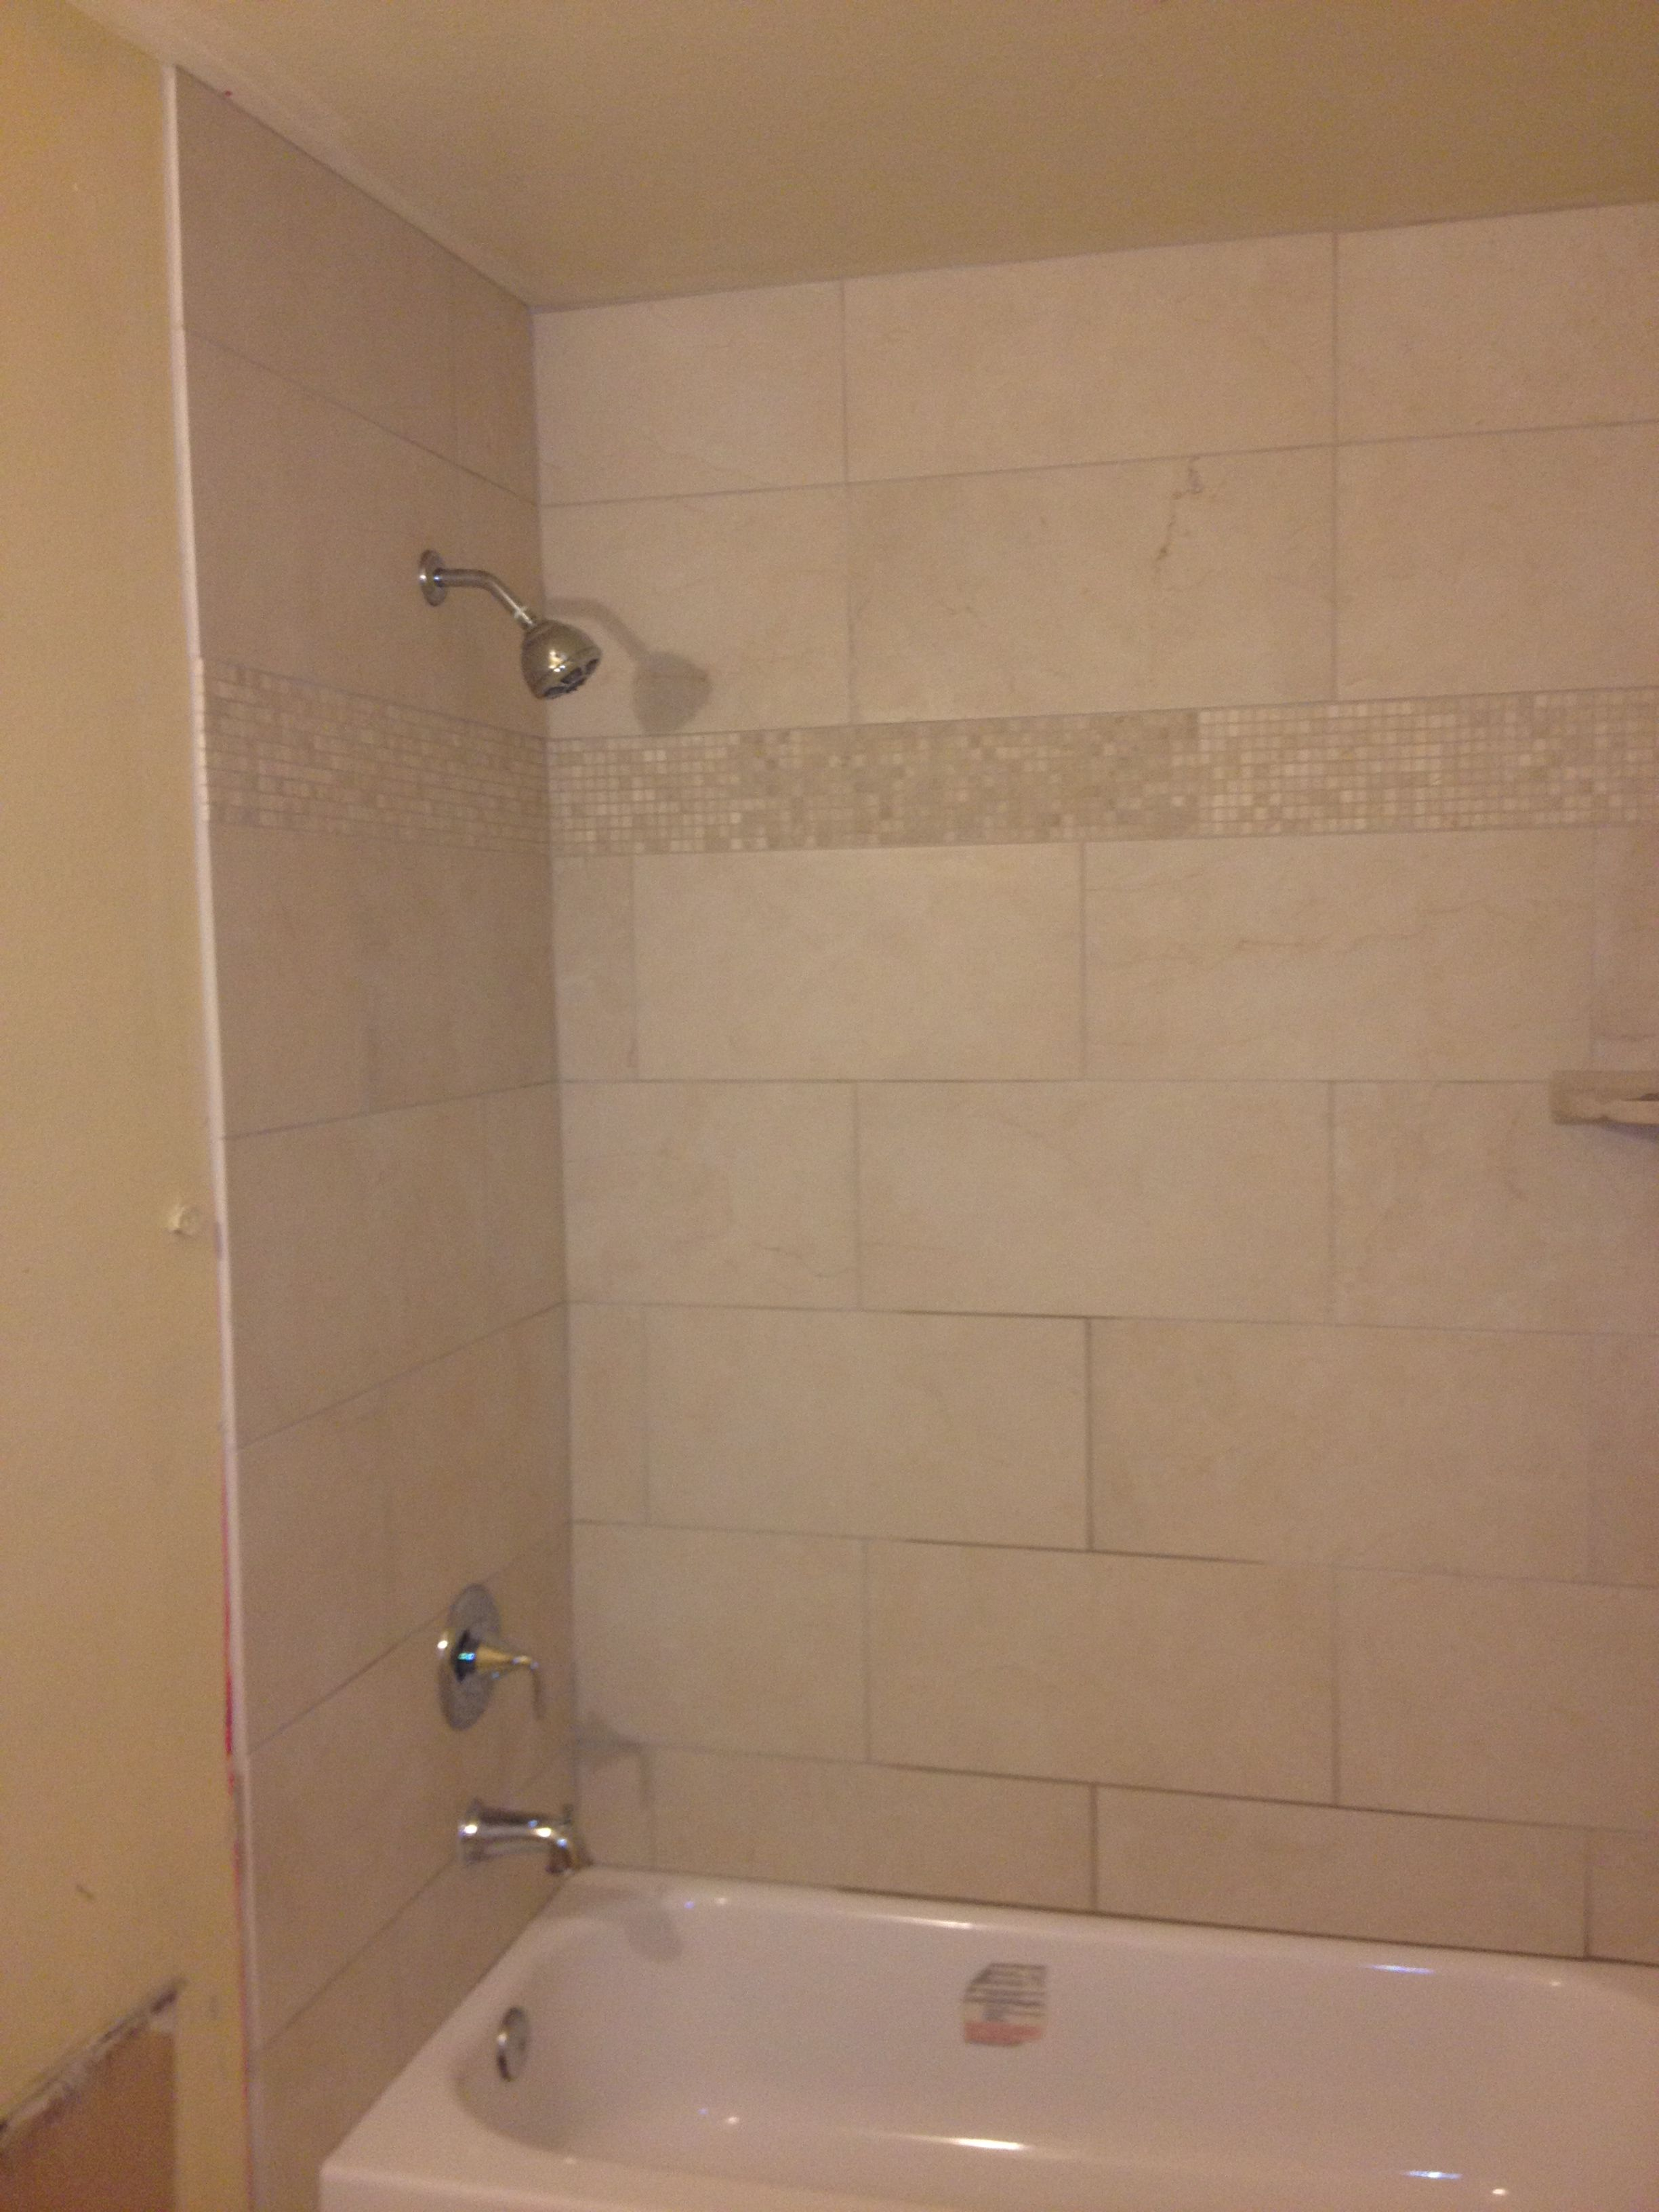 Tub Tile Surround With Travertine Band Showers Tubs Pinterest